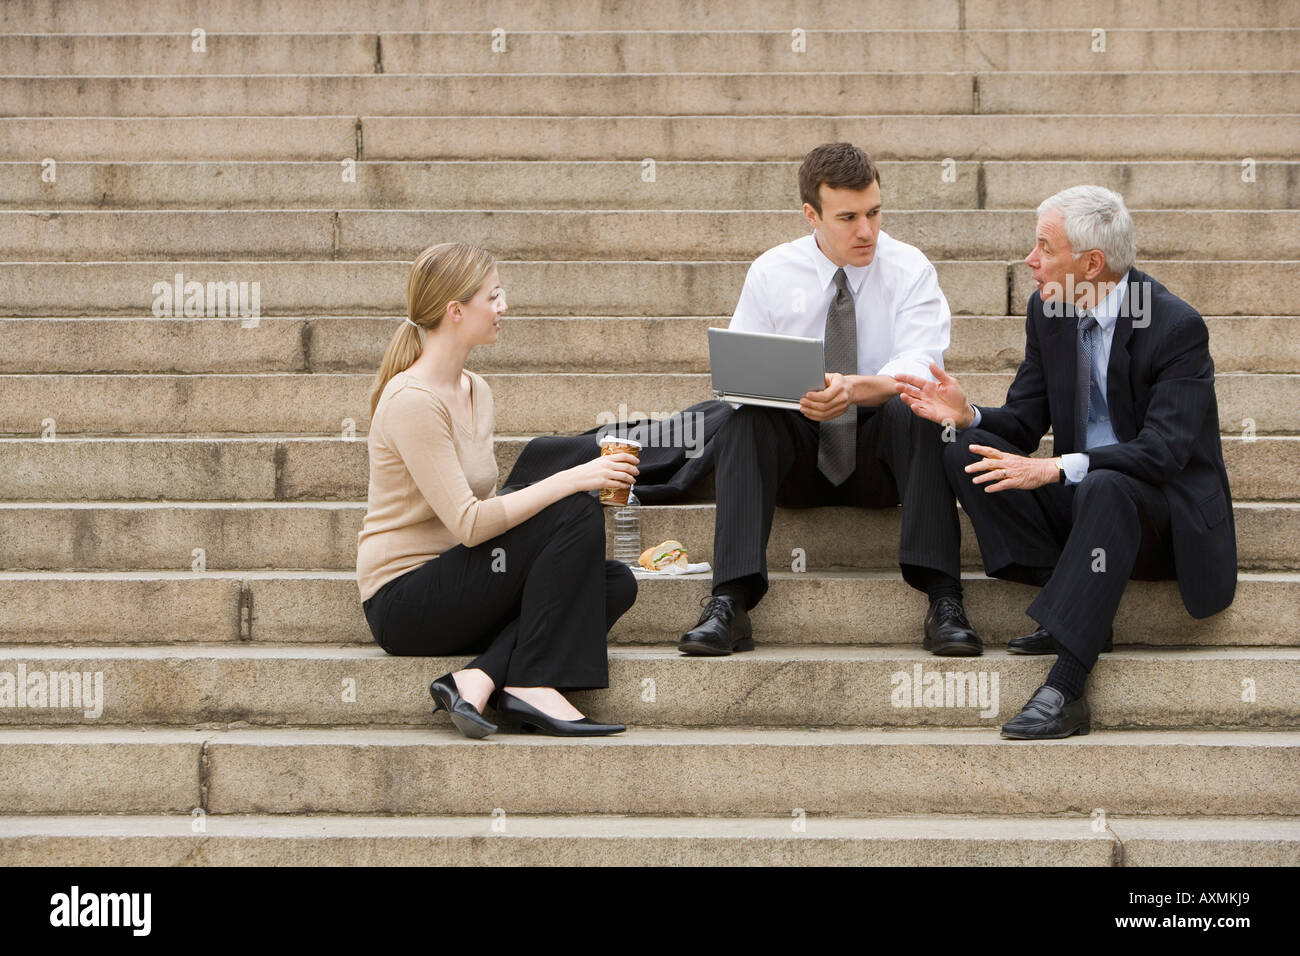 Three business people talking outdoors on stairs with laptop - Stock Image